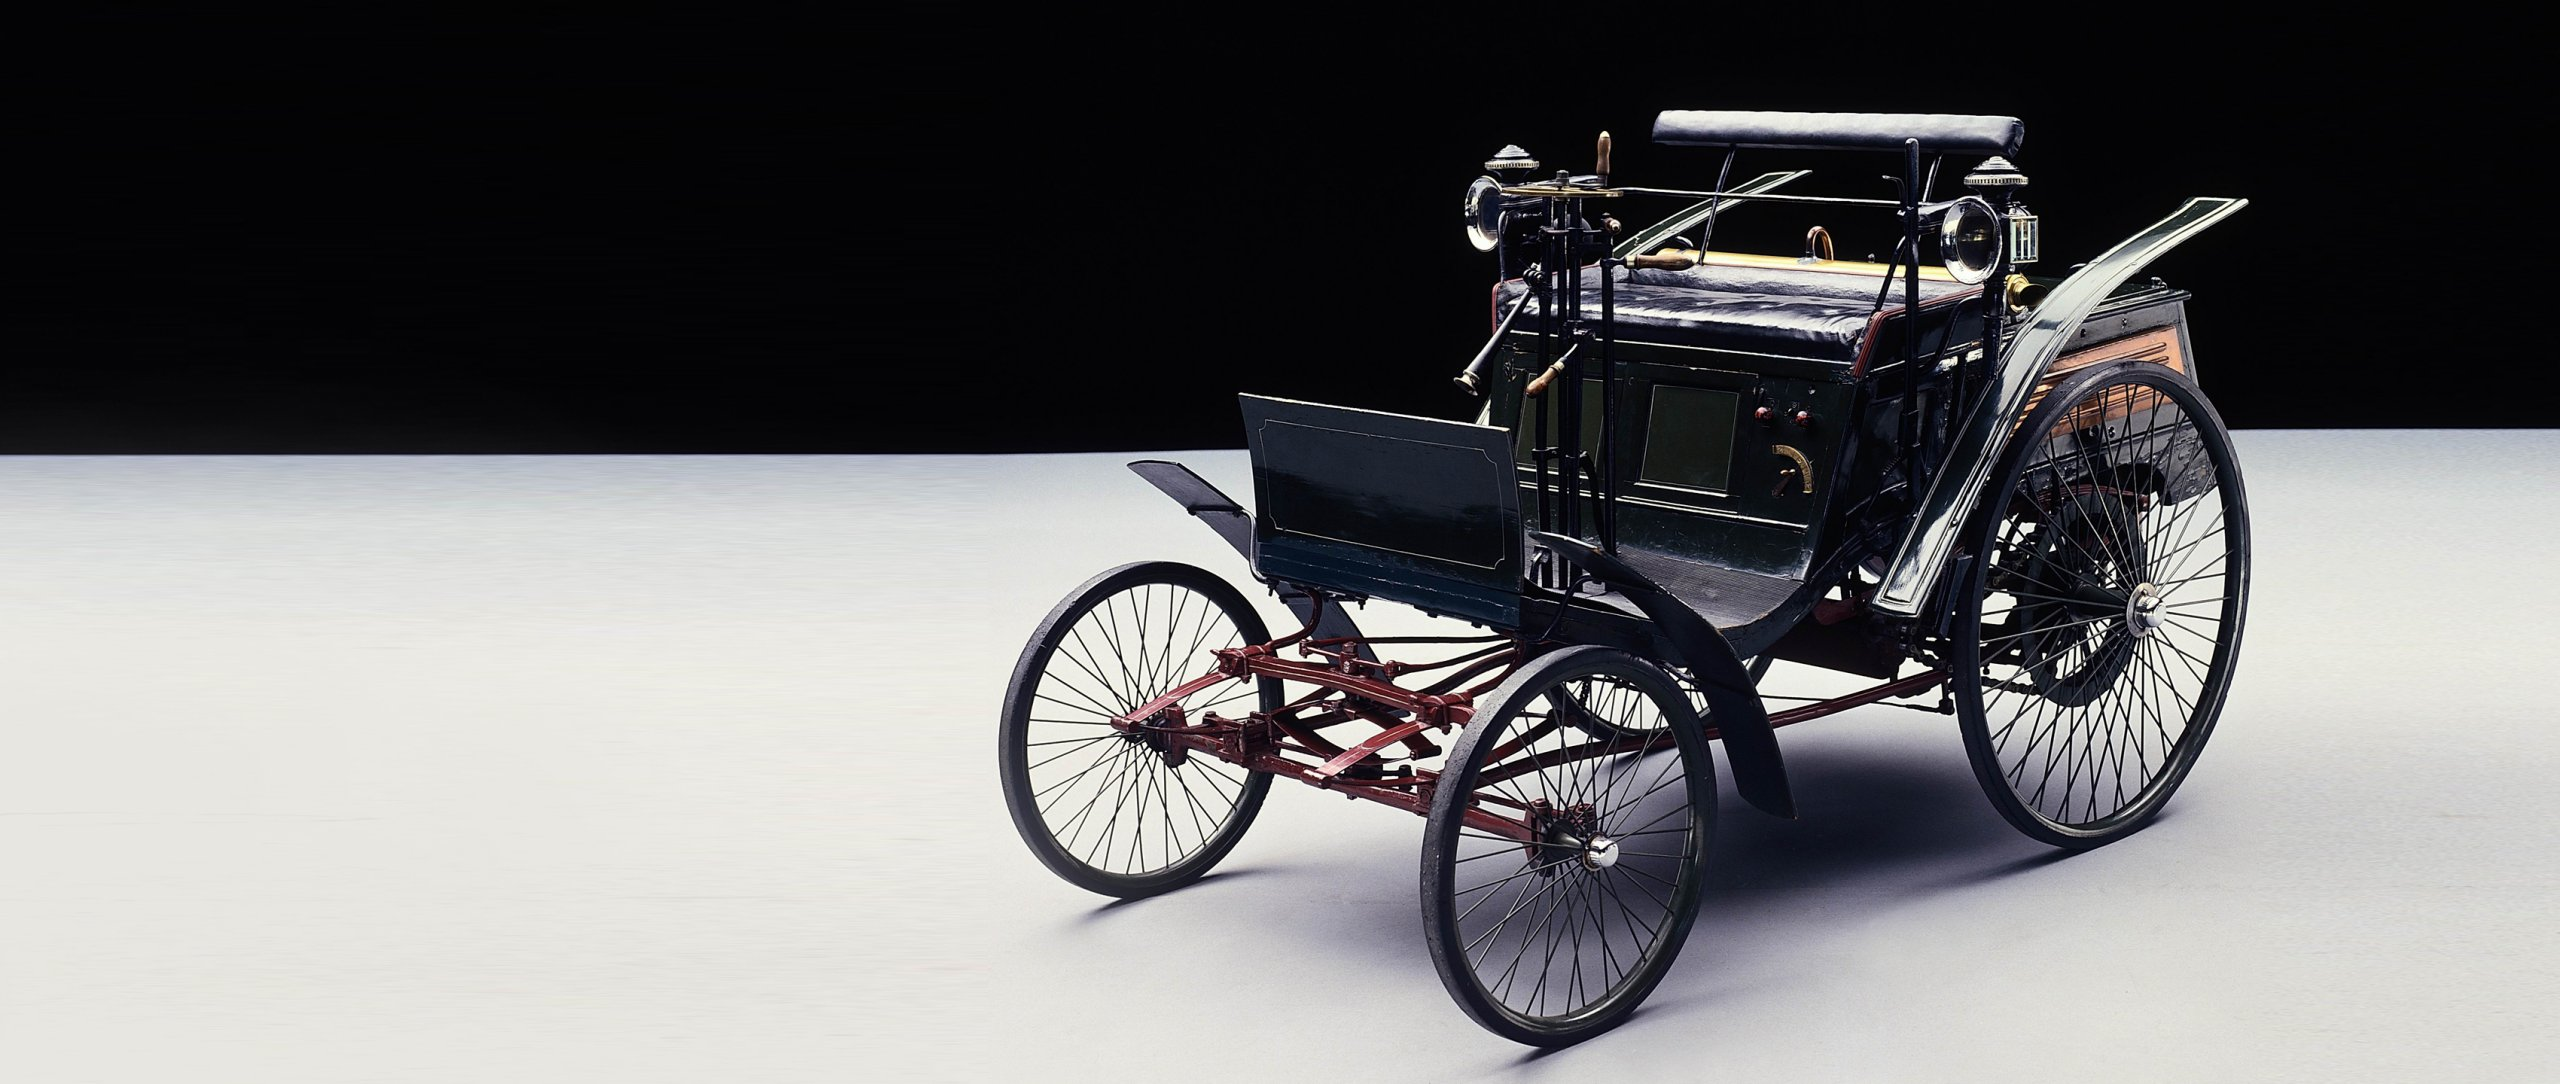 The Motor Velocipede is added to the Benz & Cie. model range in 1894 to introduce a low-priced compact car.